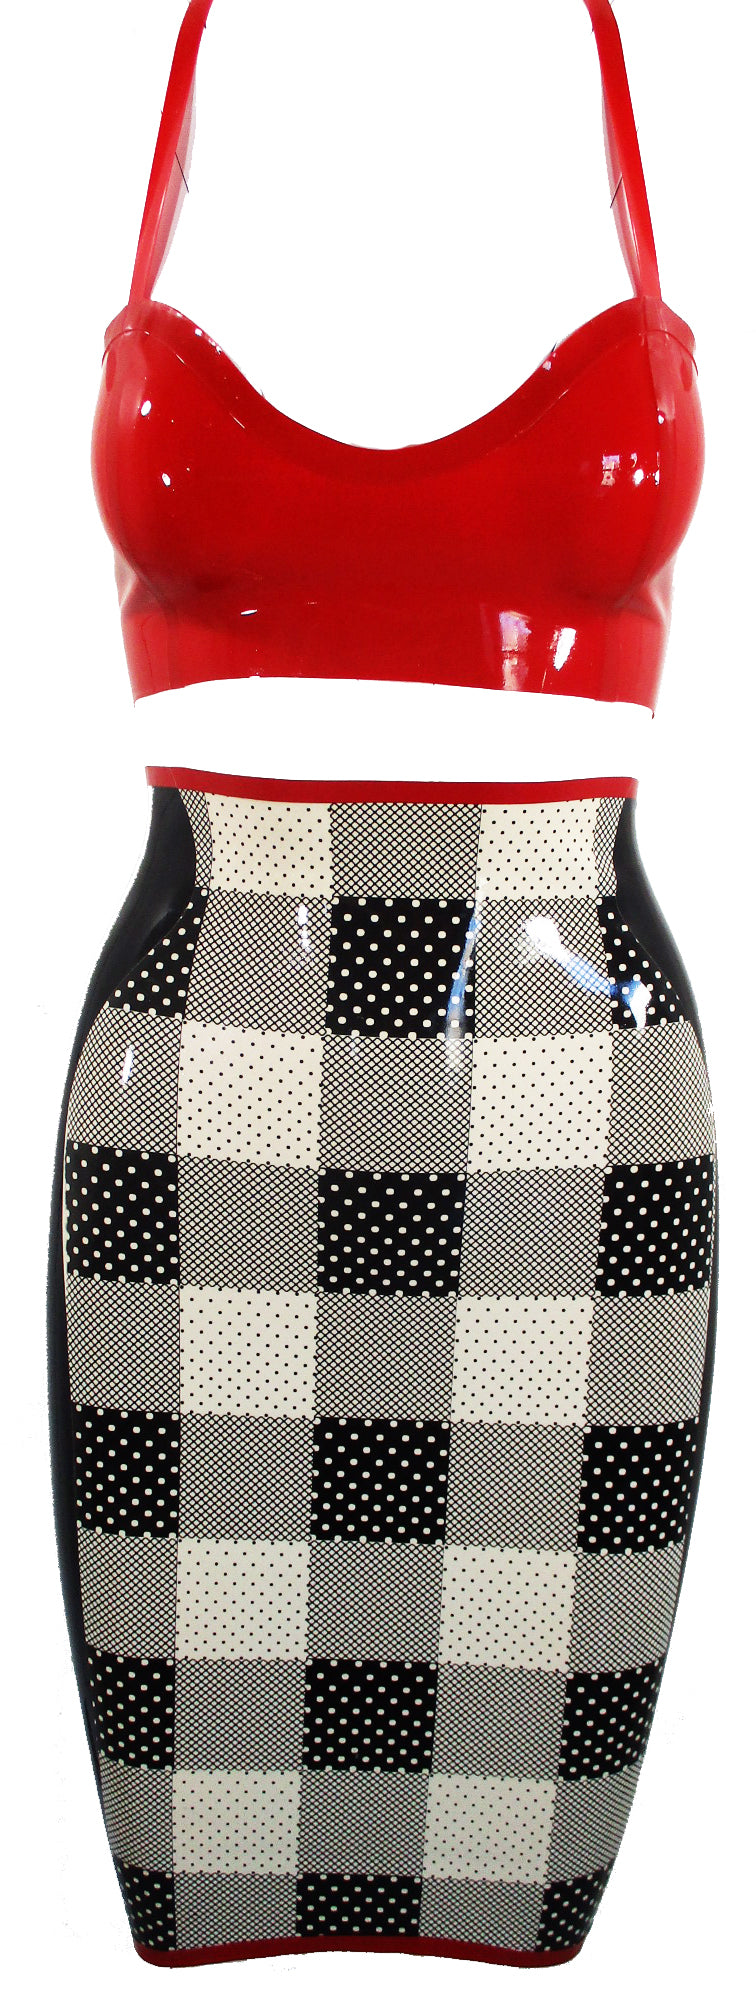 Plaid Print Latex Pencil Skirt & Latex Bra - BIZARRE FETISH COUTURE